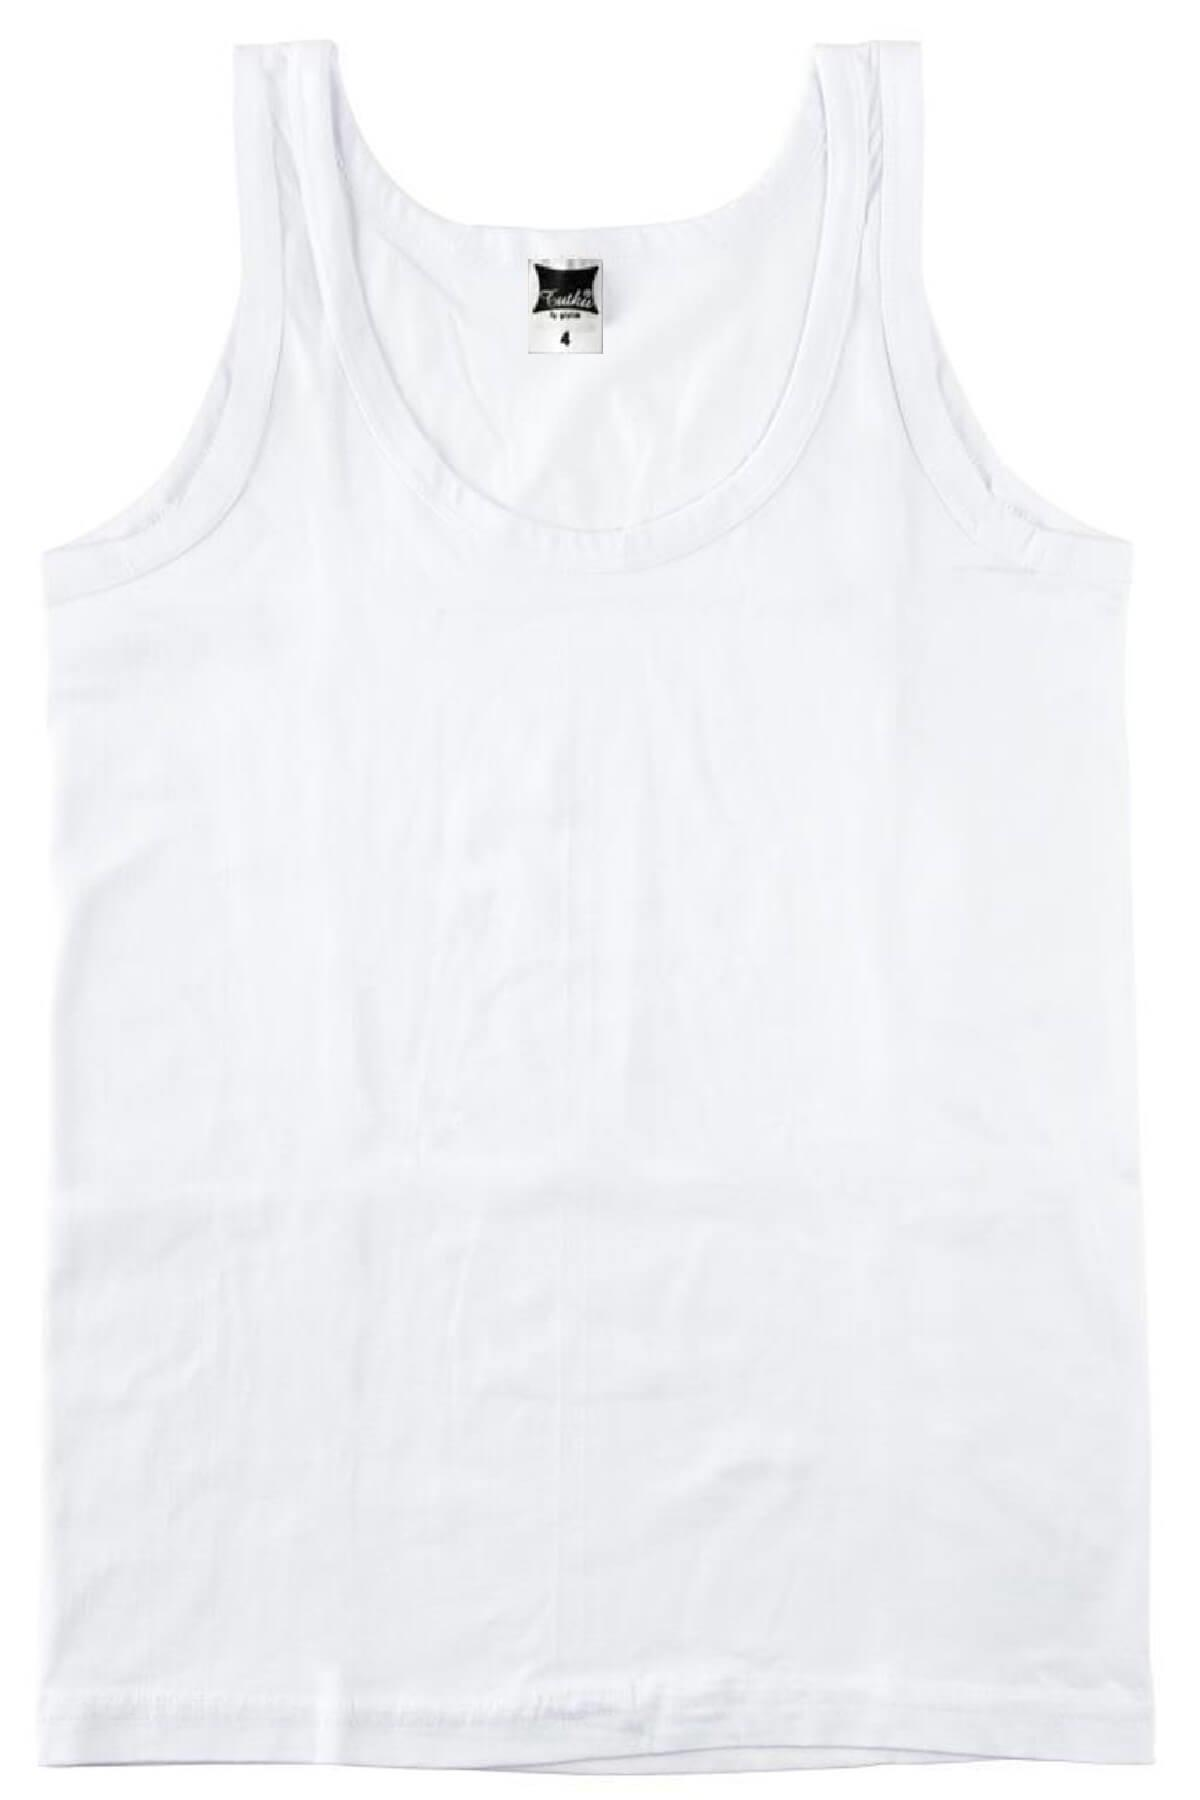 Boy's Sleeveless Undershirt- 6 Pieces